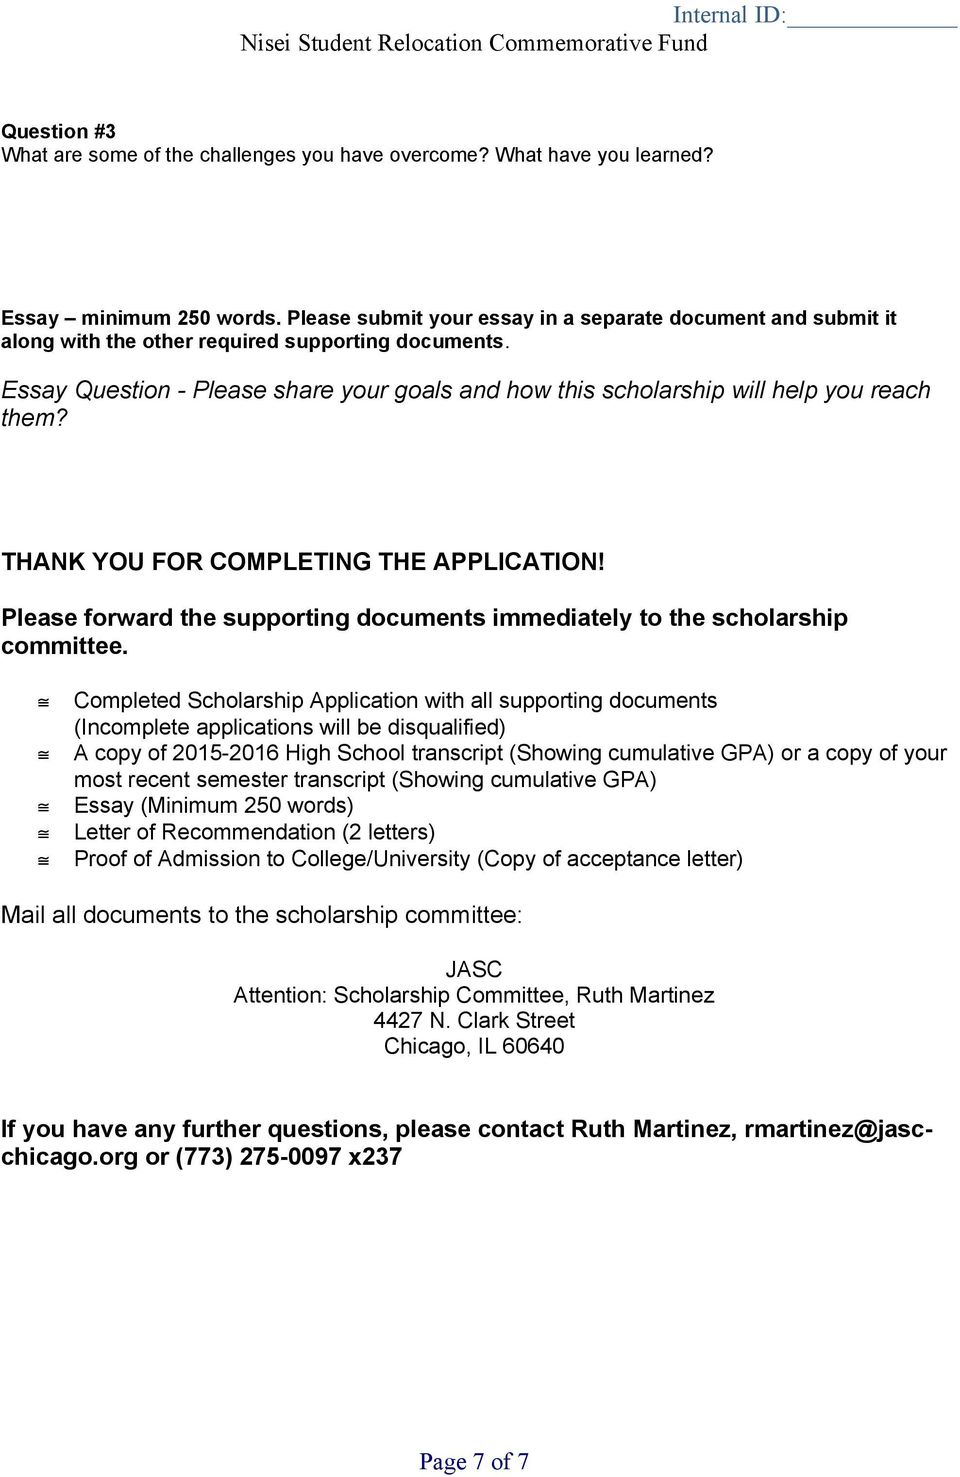 THANK YOU FOR COMPLETING THE APPLICATION! Please frward the supprting dcuments immediately t the schlarship cmmittee.